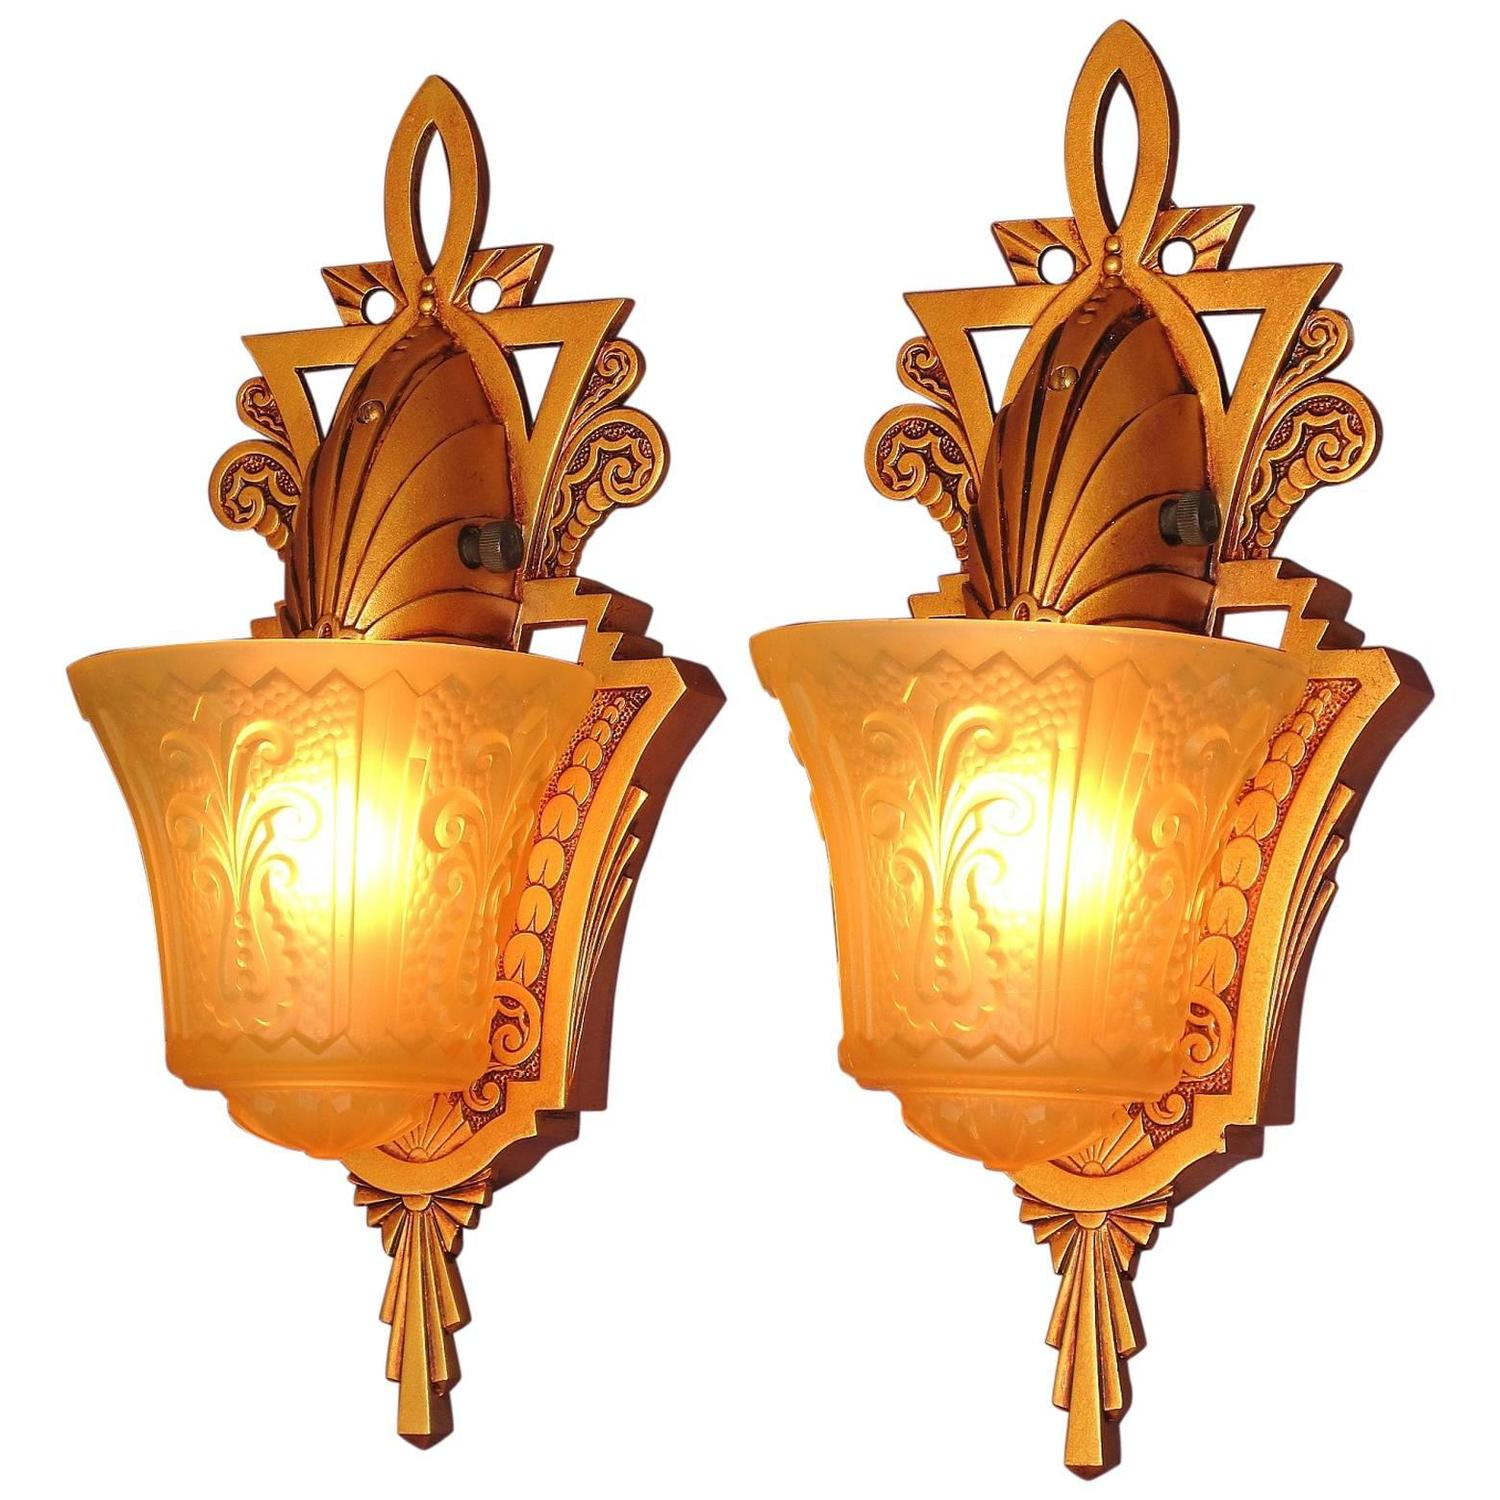 Pair of original beardslee art deco slip shade wall sconces for pair of original beardslee art deco slip shade wall sconces for sale at 1stdibs arubaitofo Image collections